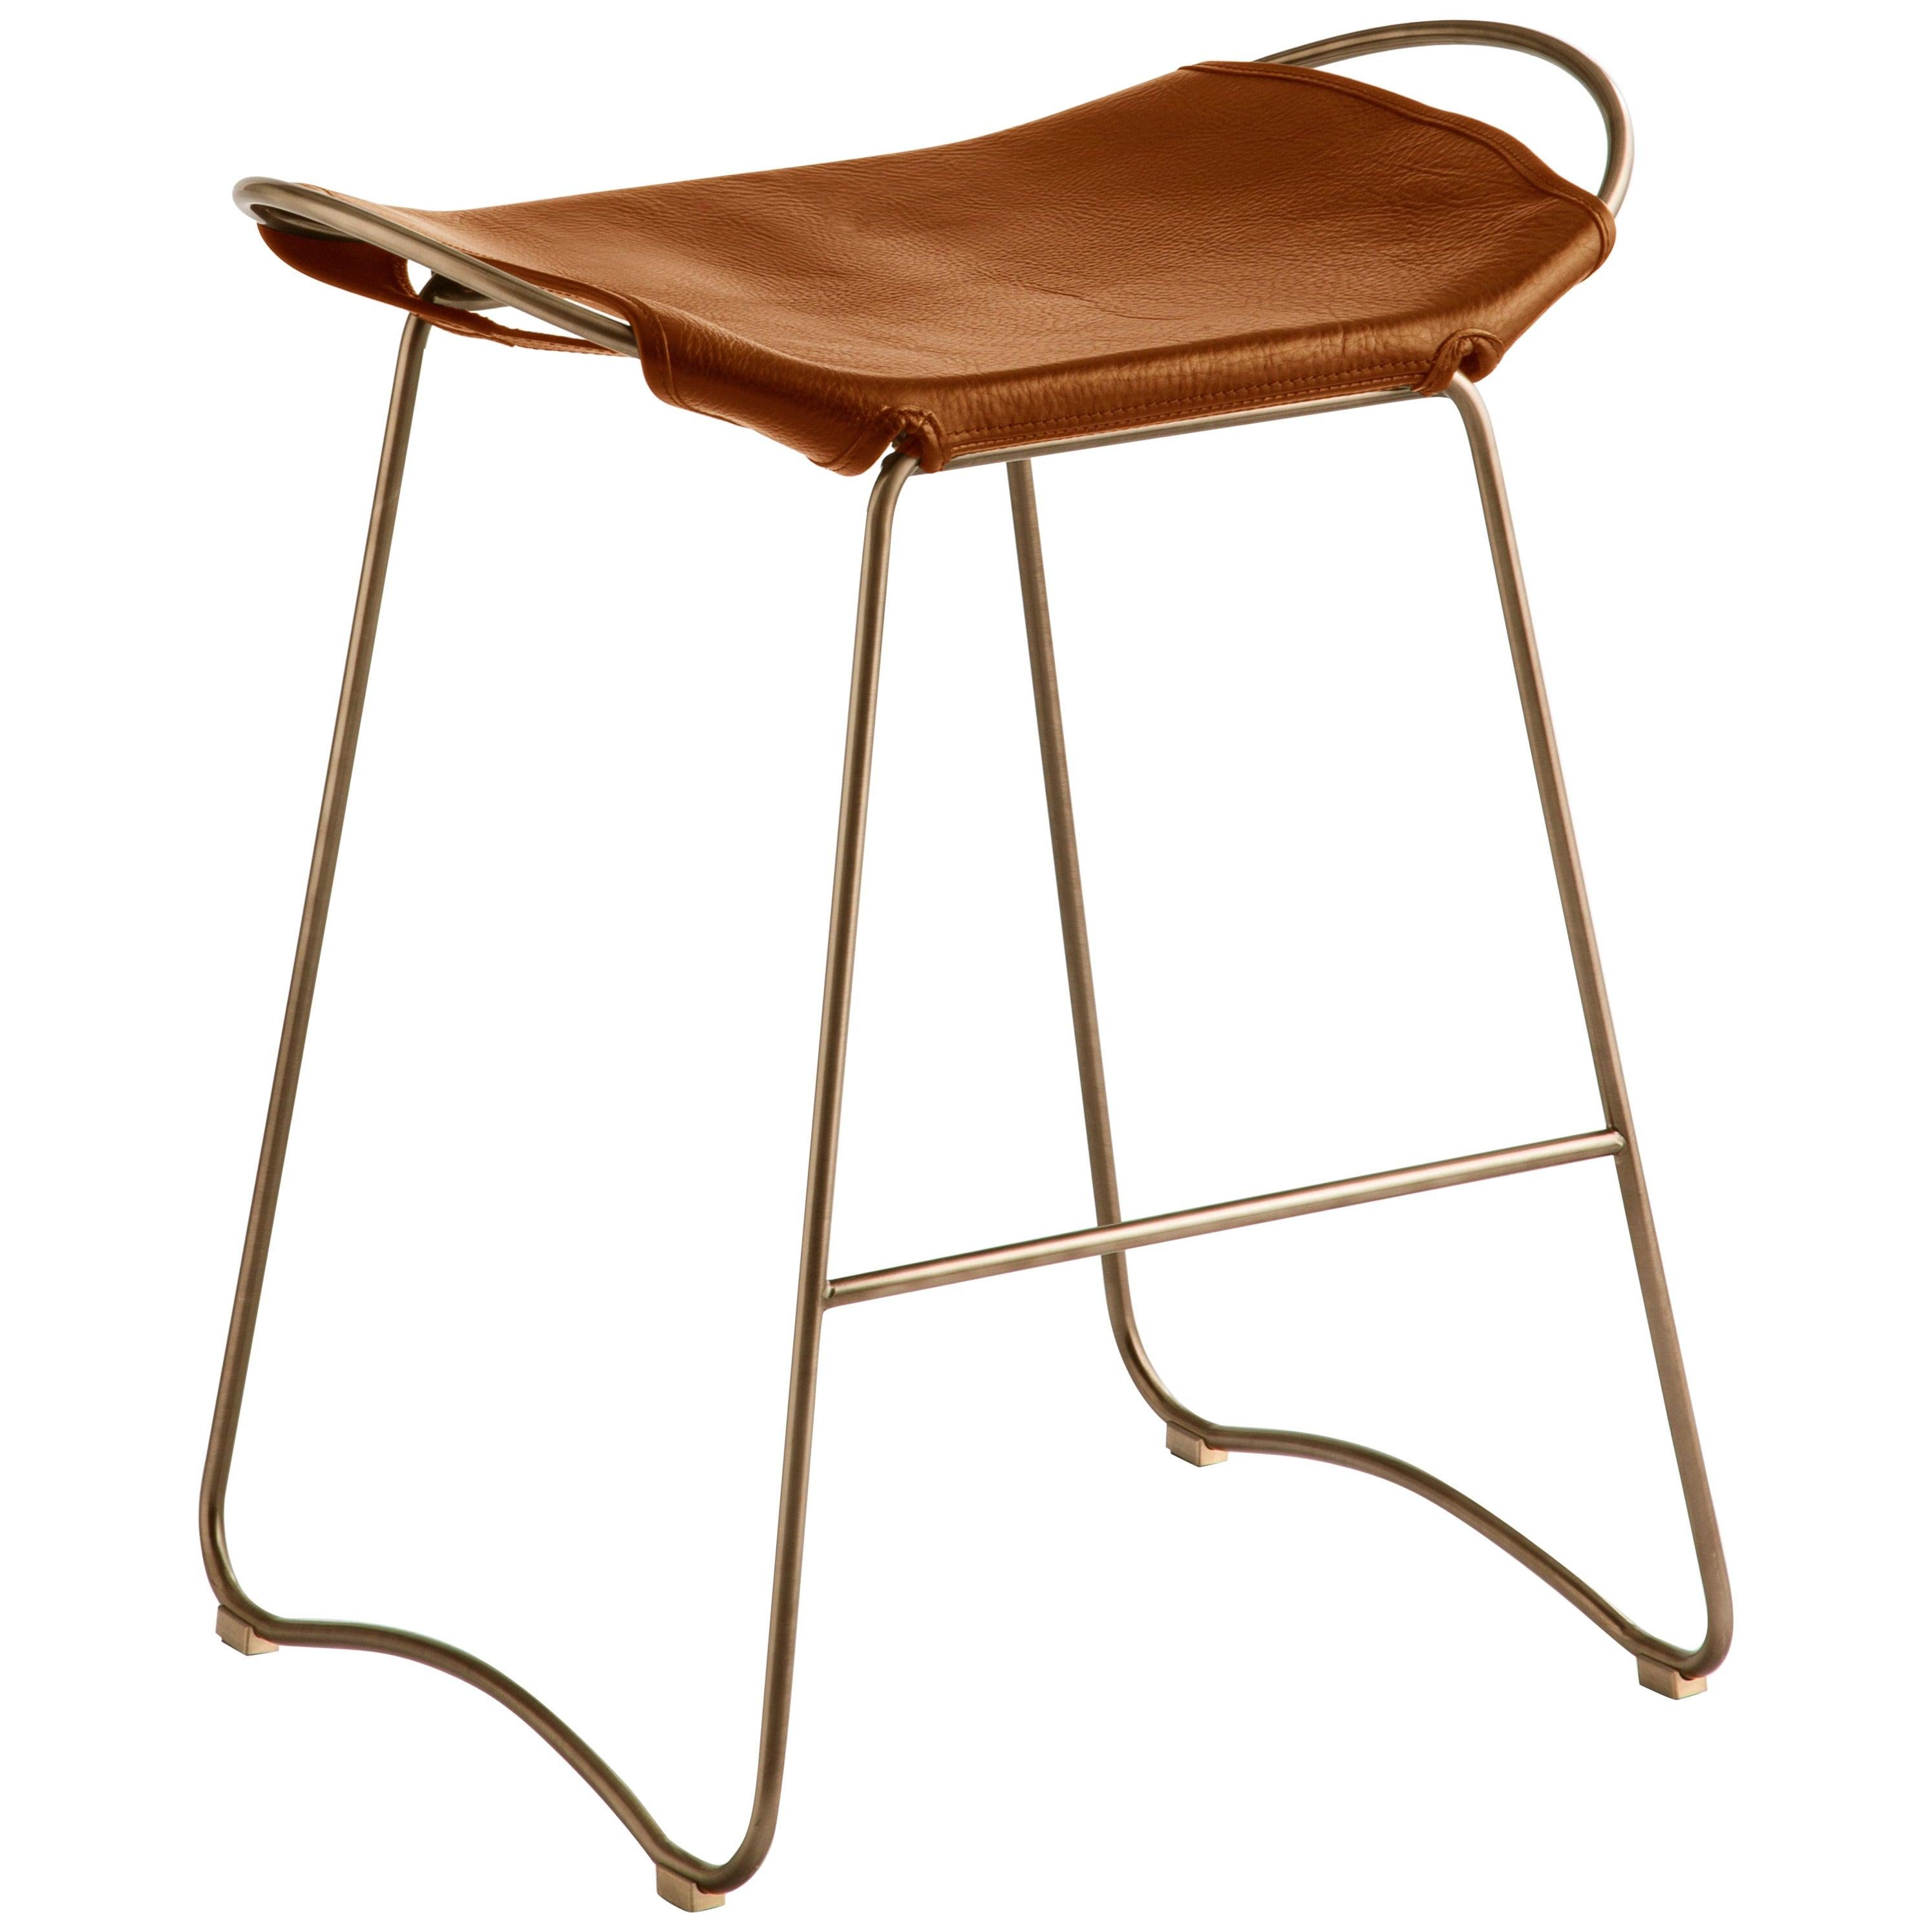 Kitchen Counter Stool Brass Steel & Tobacco Leather, Contemporary Modern Style